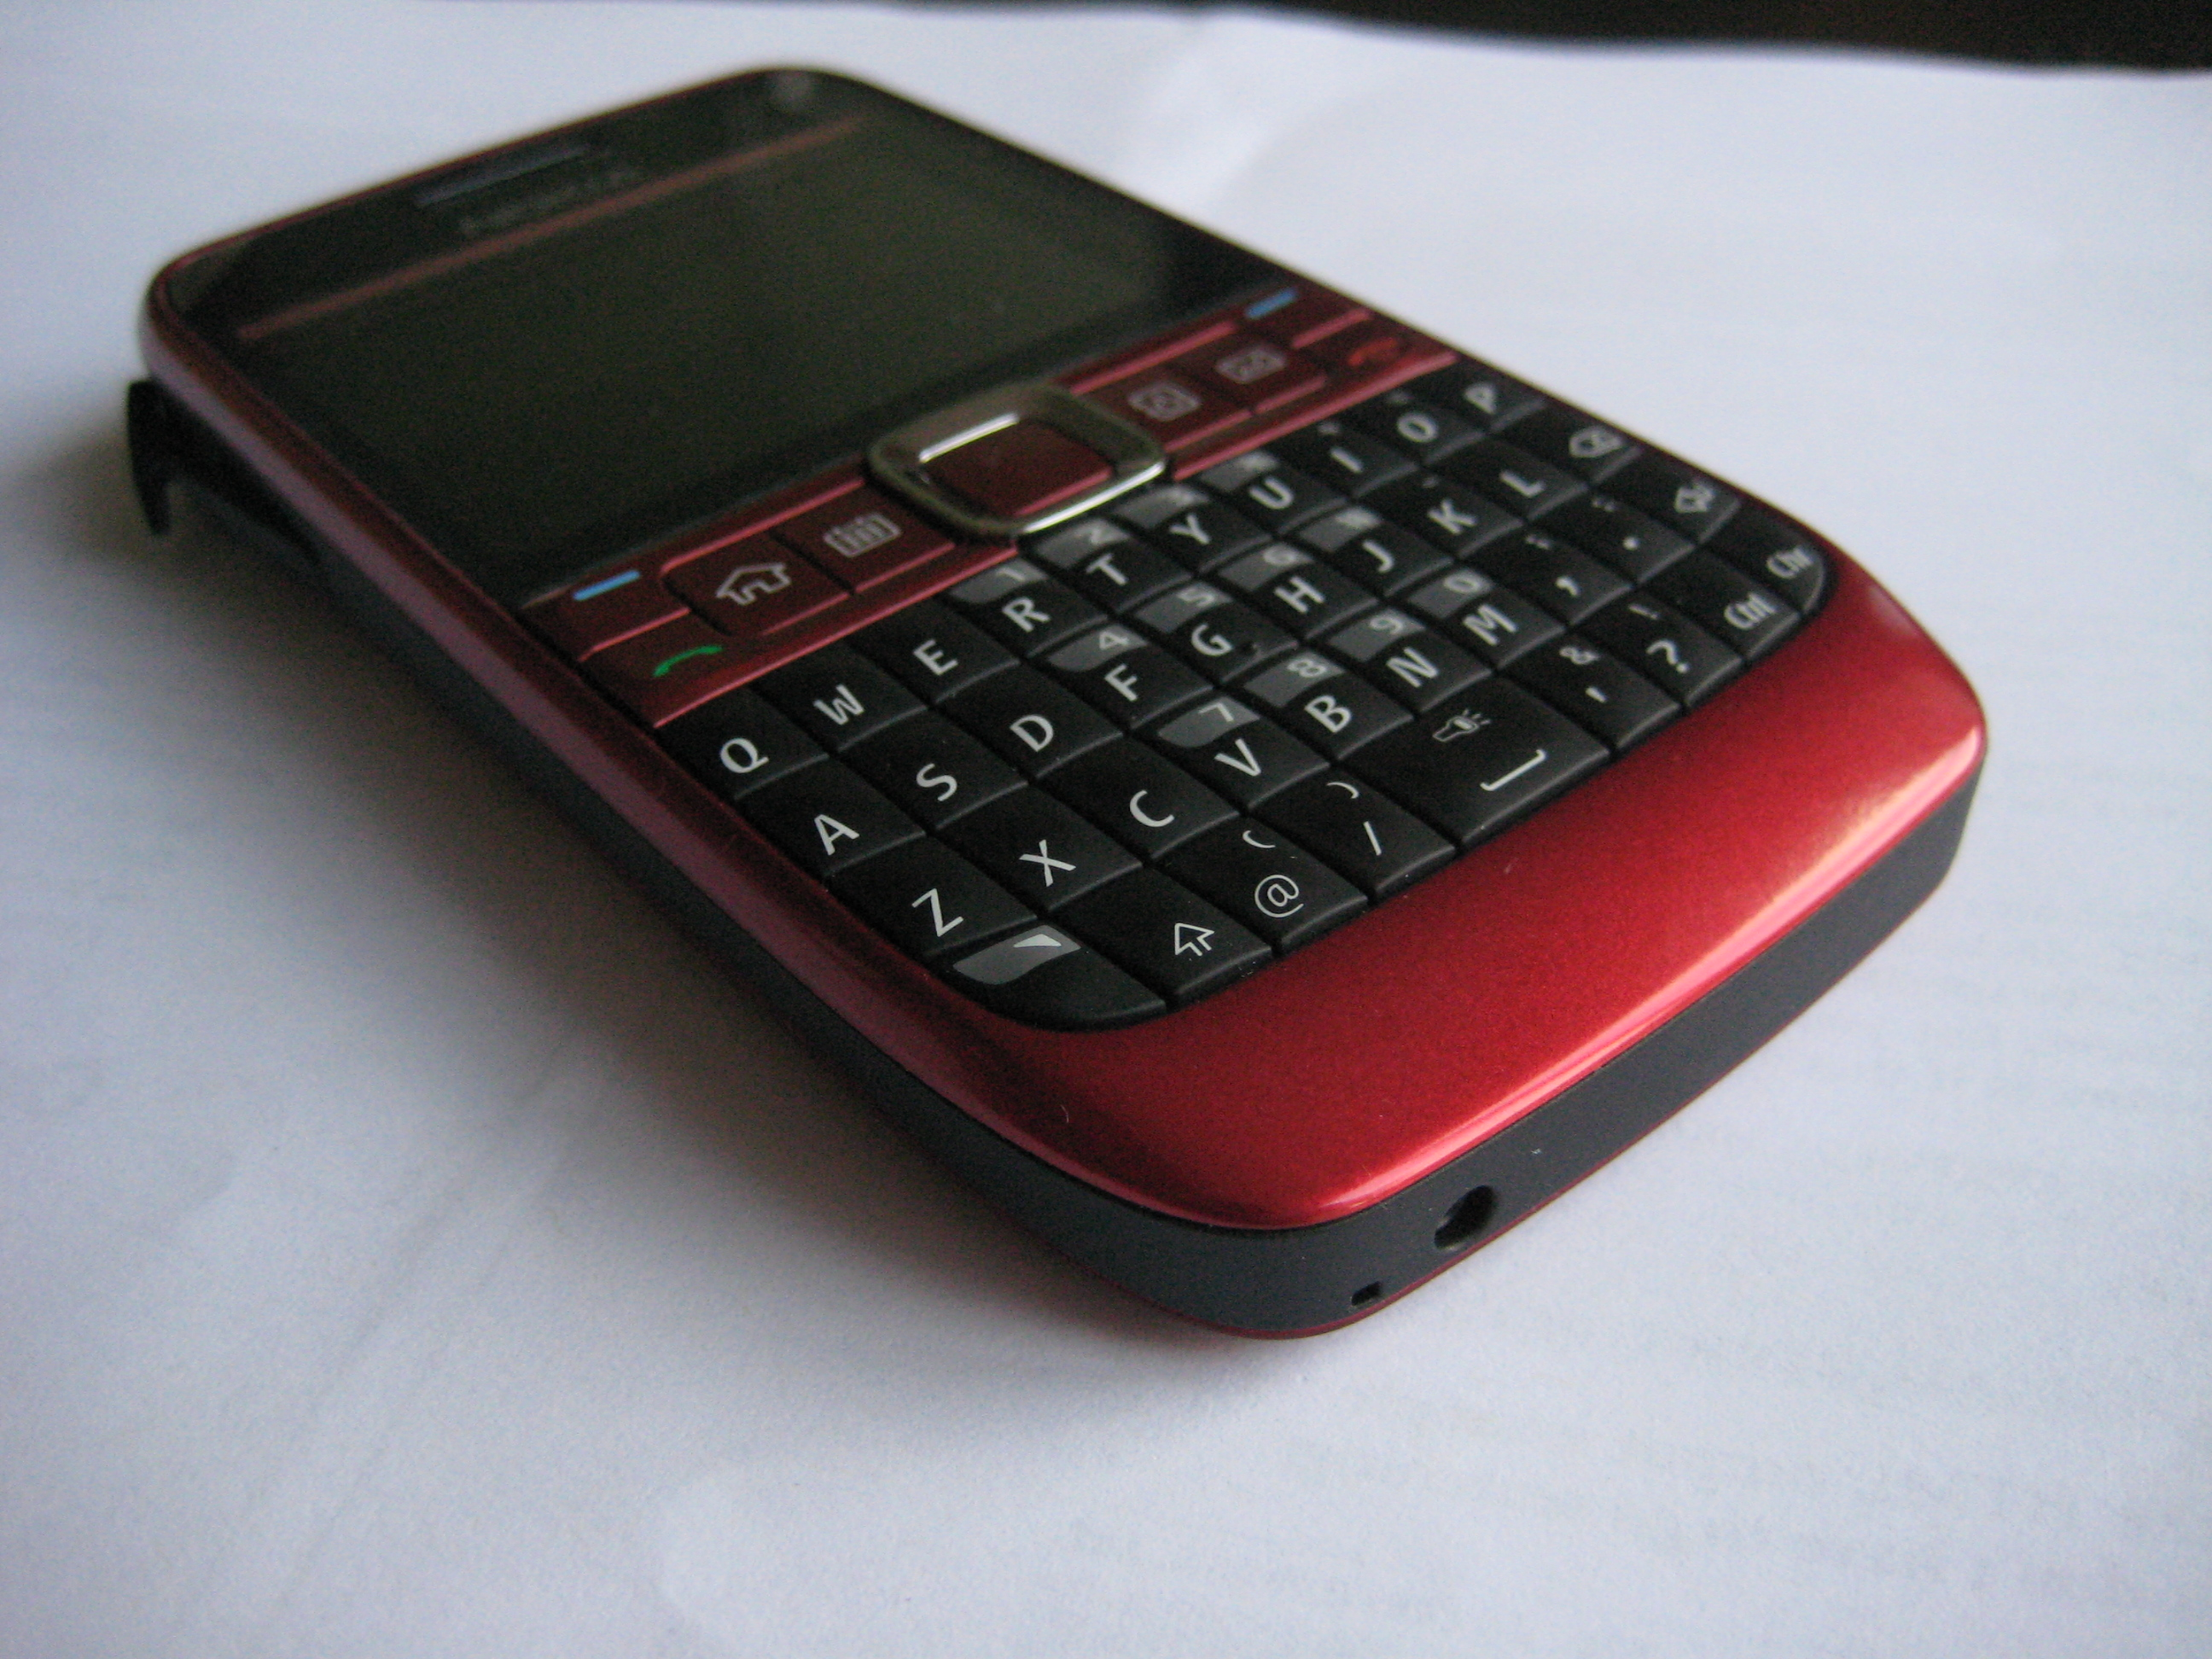 Nokia E63 Software